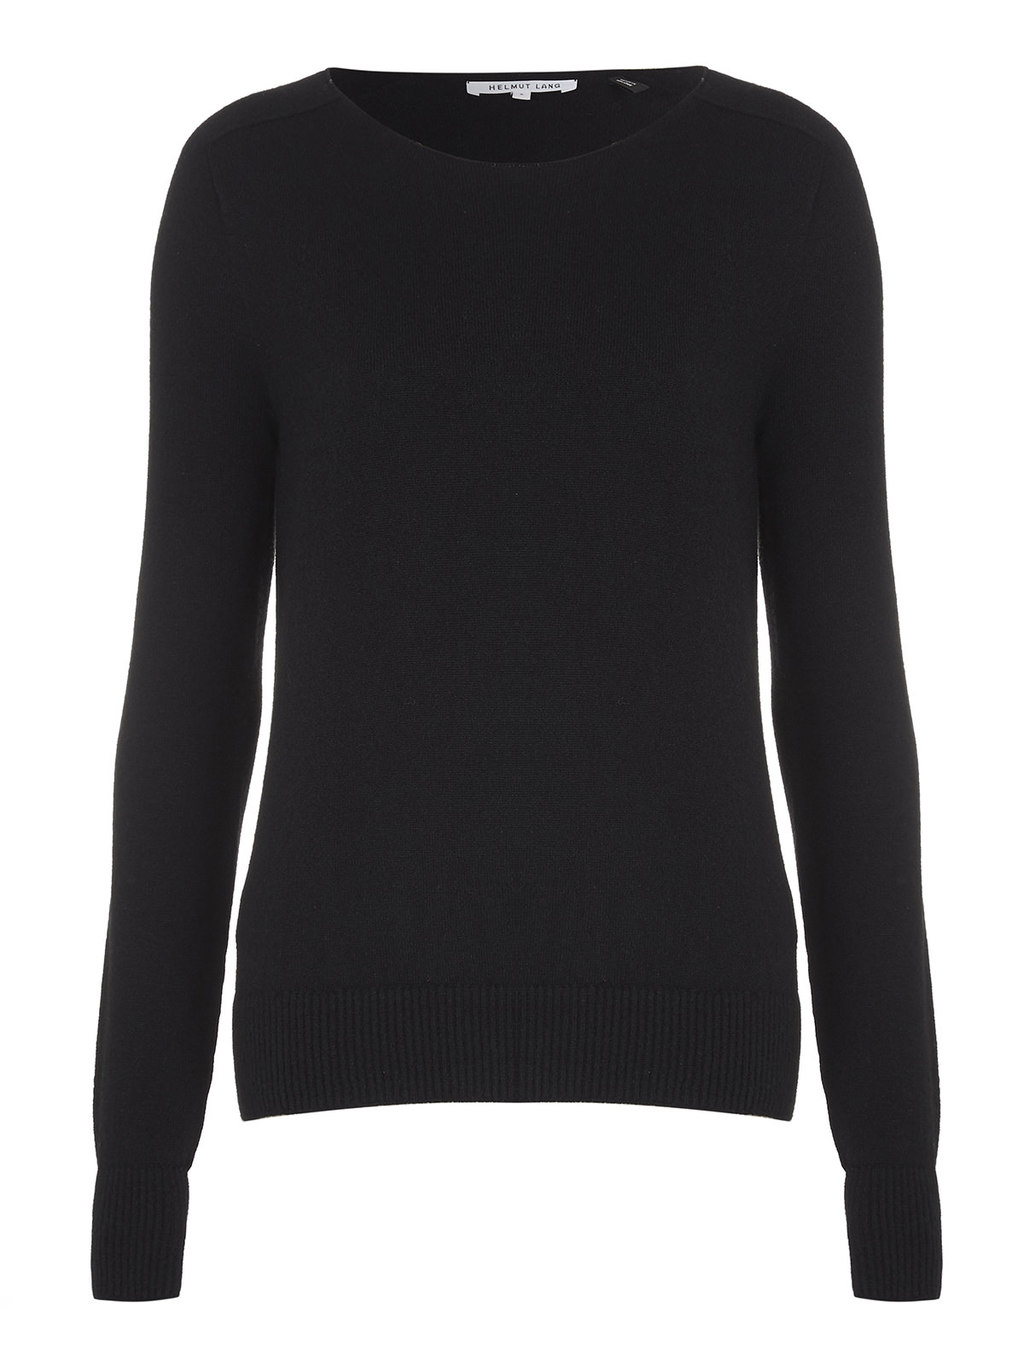 Seamless Sweater - neckline: round neck; pattern: plain; length: below the bottom; style: standard; predominant colour: black; occasions: casual, work, creative work; fibres: wool - 100%; fit: standard fit; sleeve length: long sleeve; sleeve style: standard; texture group: knits/crochet; pattern type: knitted - fine stitch; pattern size: standard; wardrobe: basic; season: a/w 2016